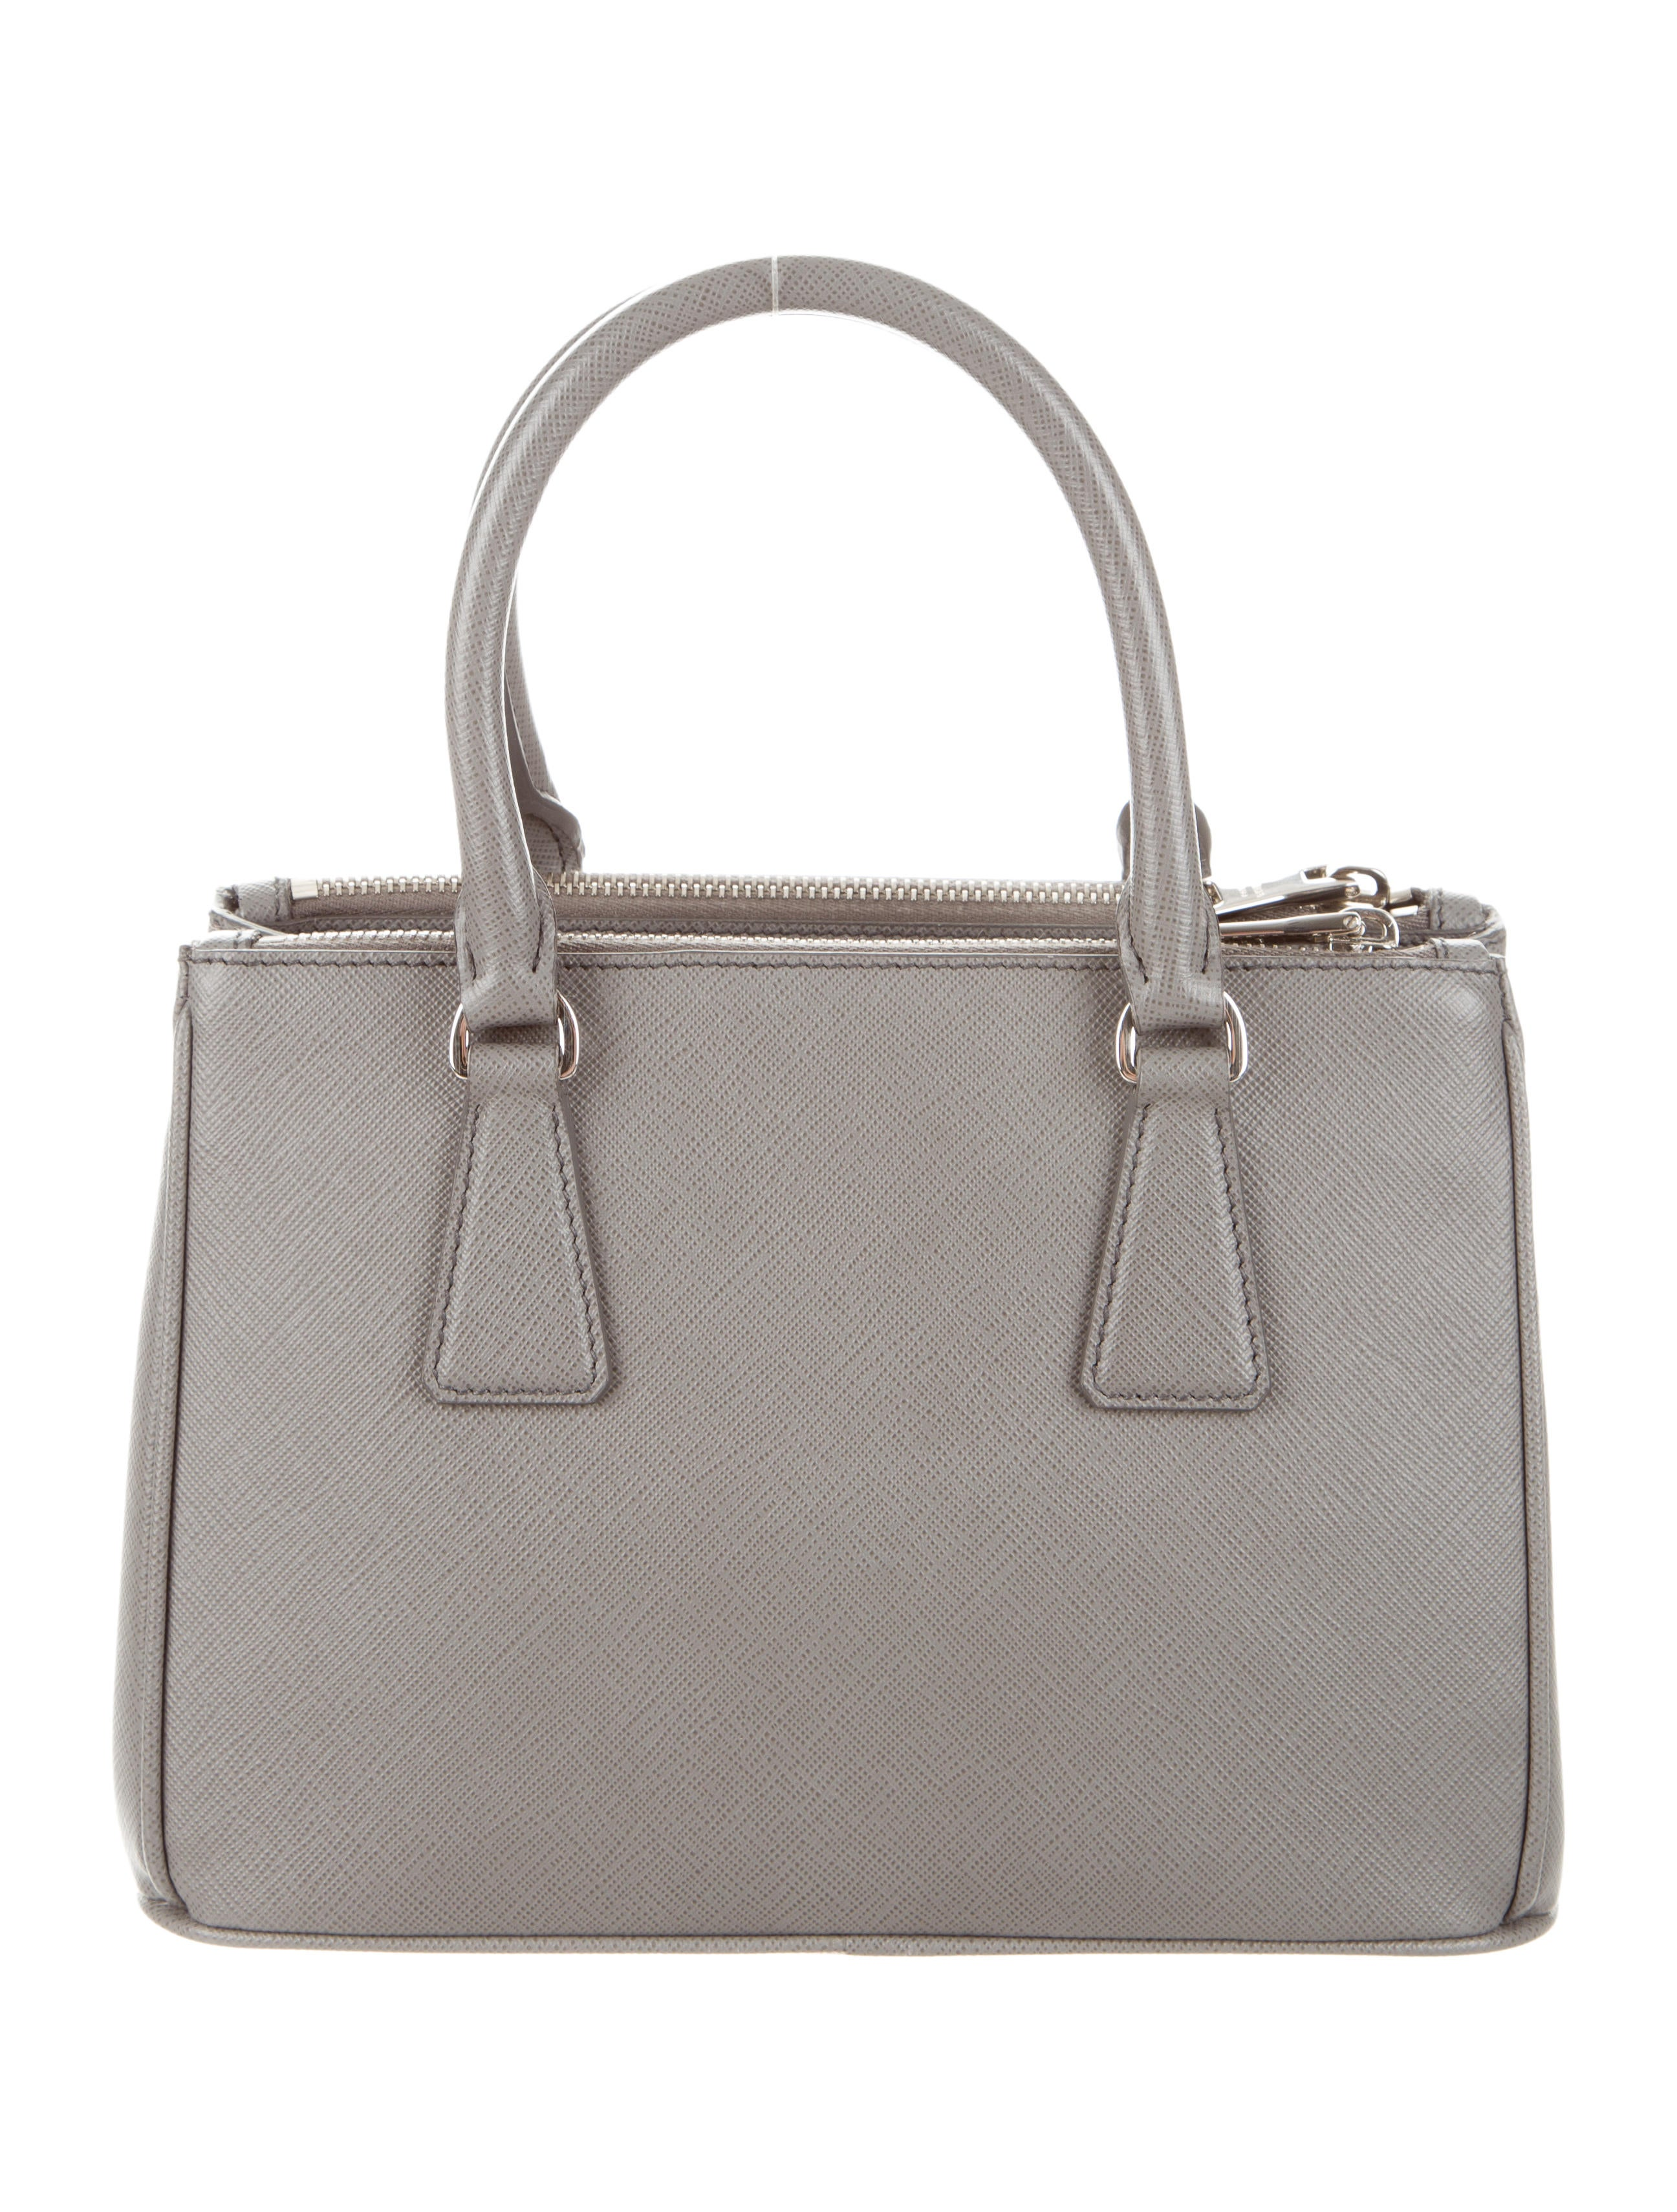 prada mini saffiano leather double-zip tote